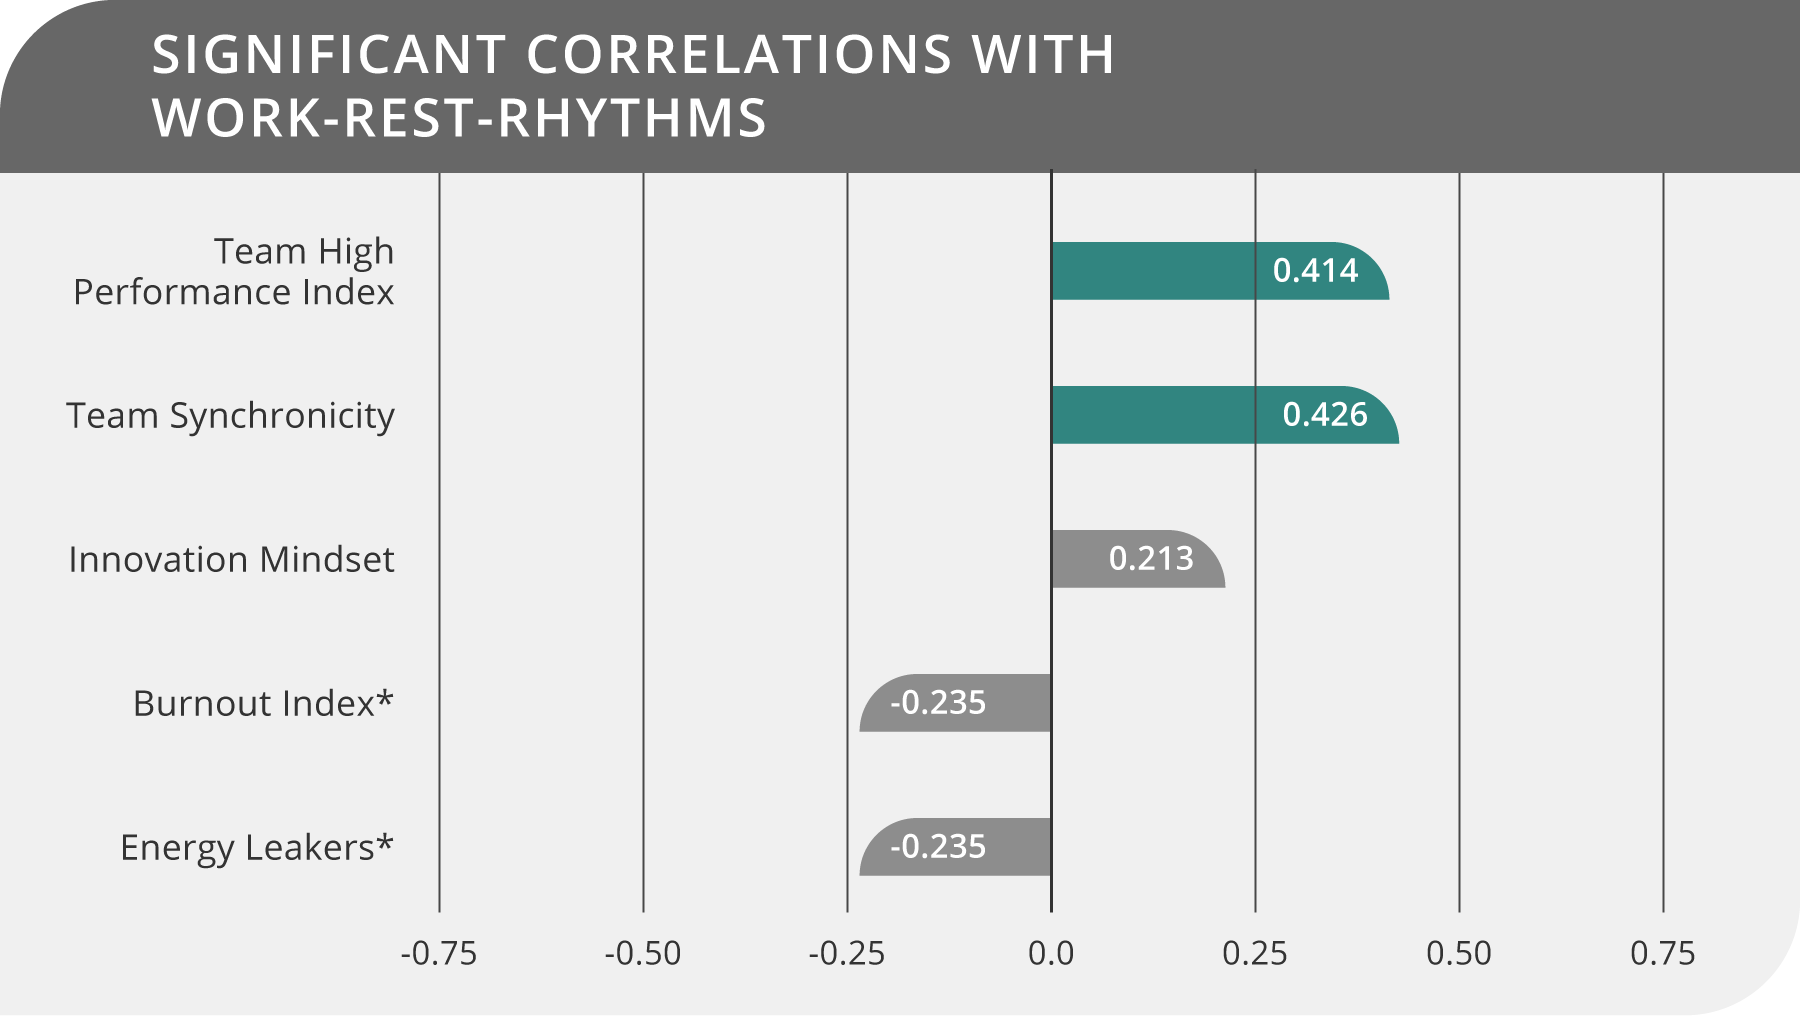 Copy of Significant Correlations with Work-Rest-Rhythms